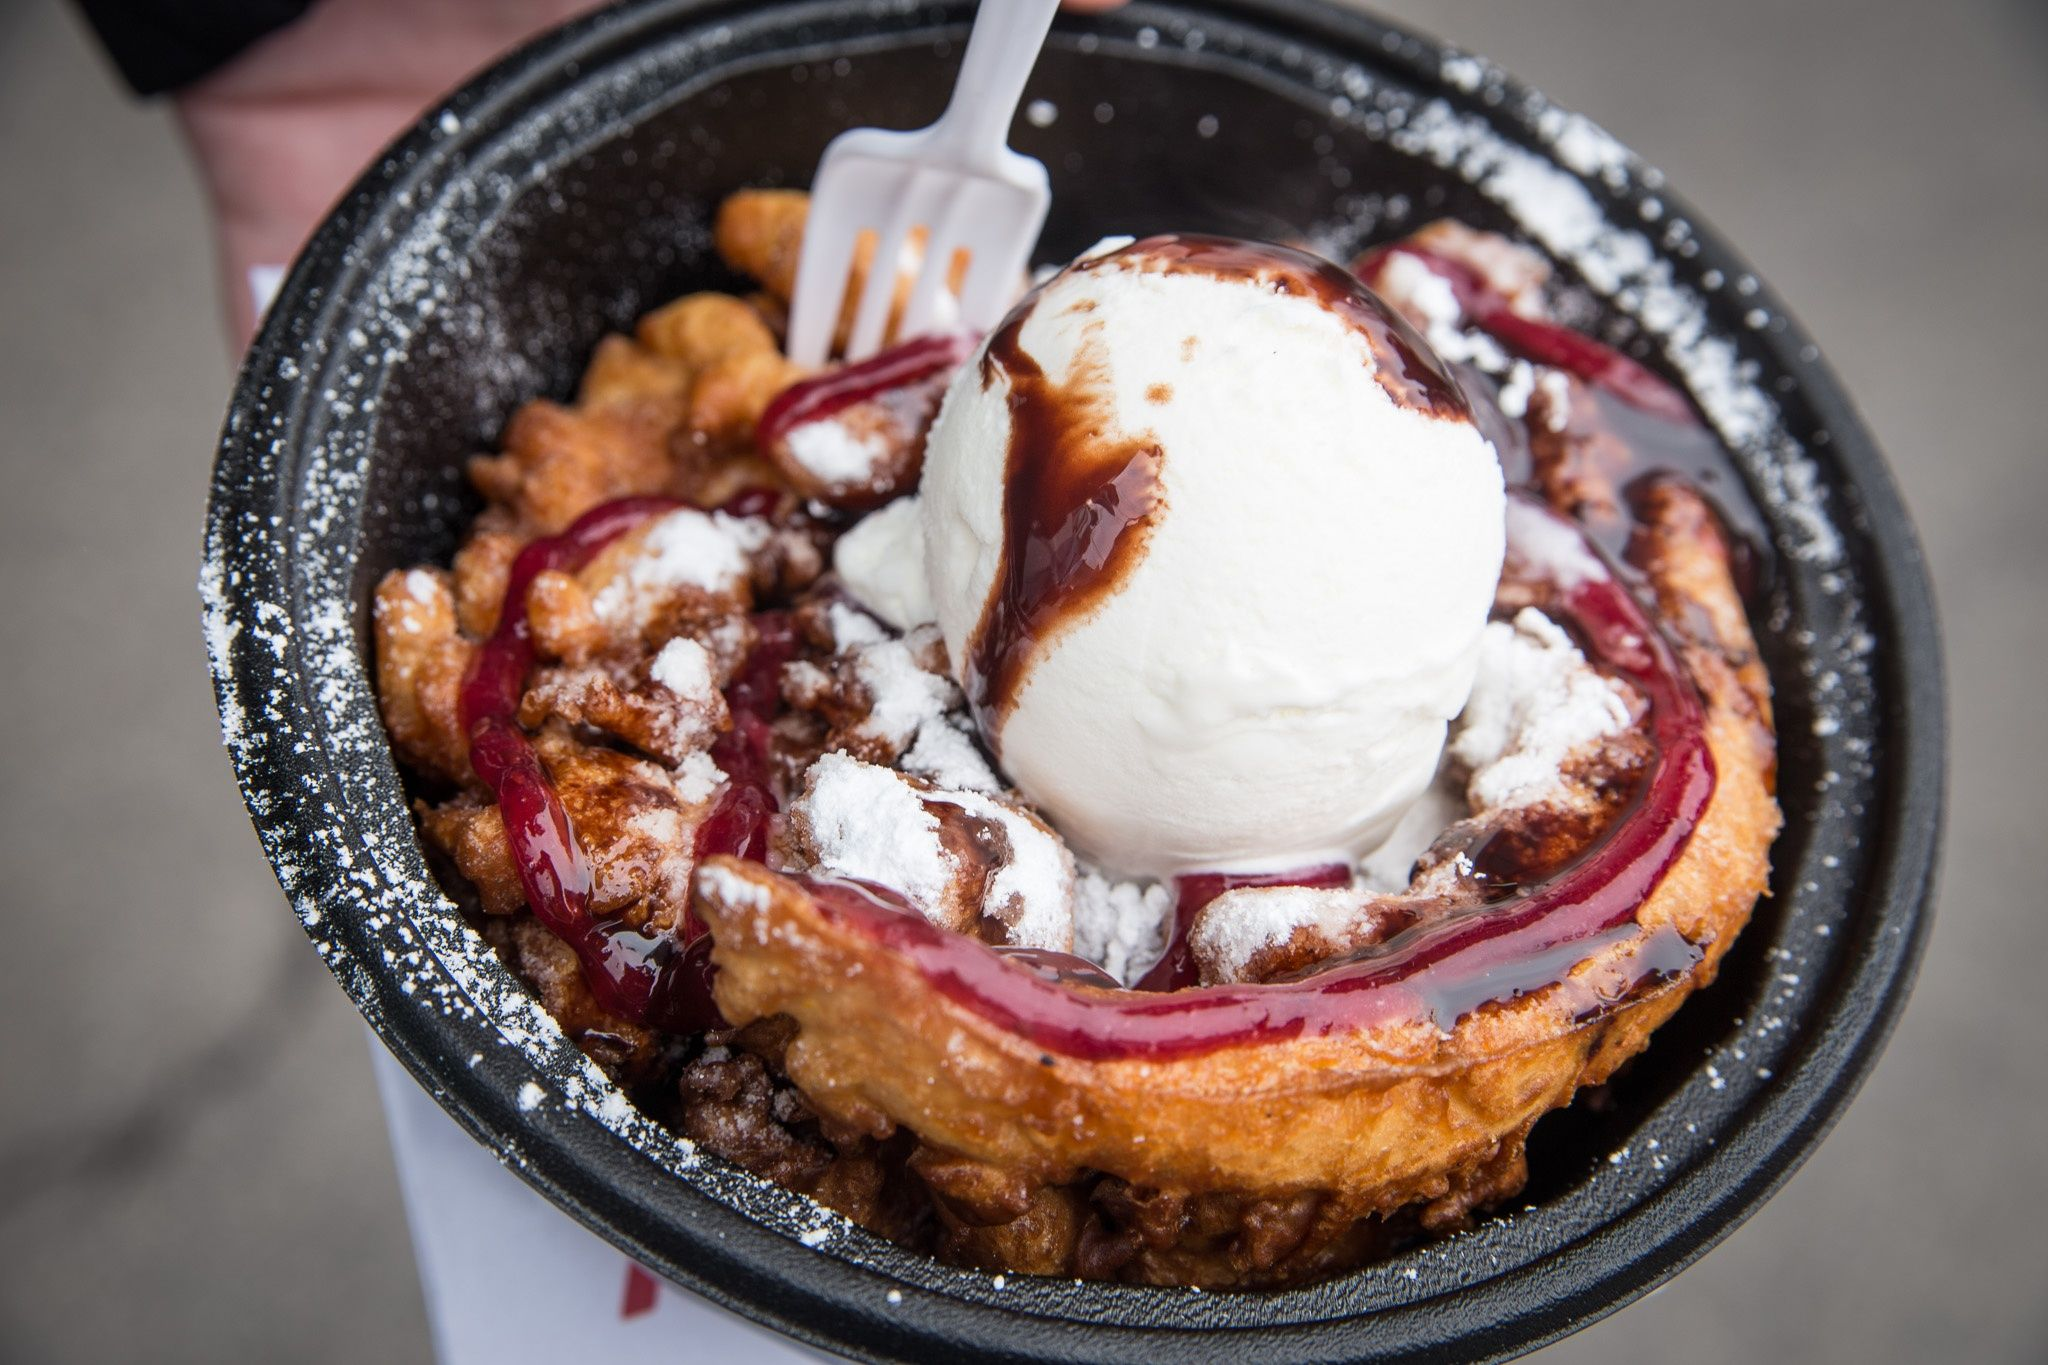 The hamilton funnel cake factory at sew hungry in hamilton